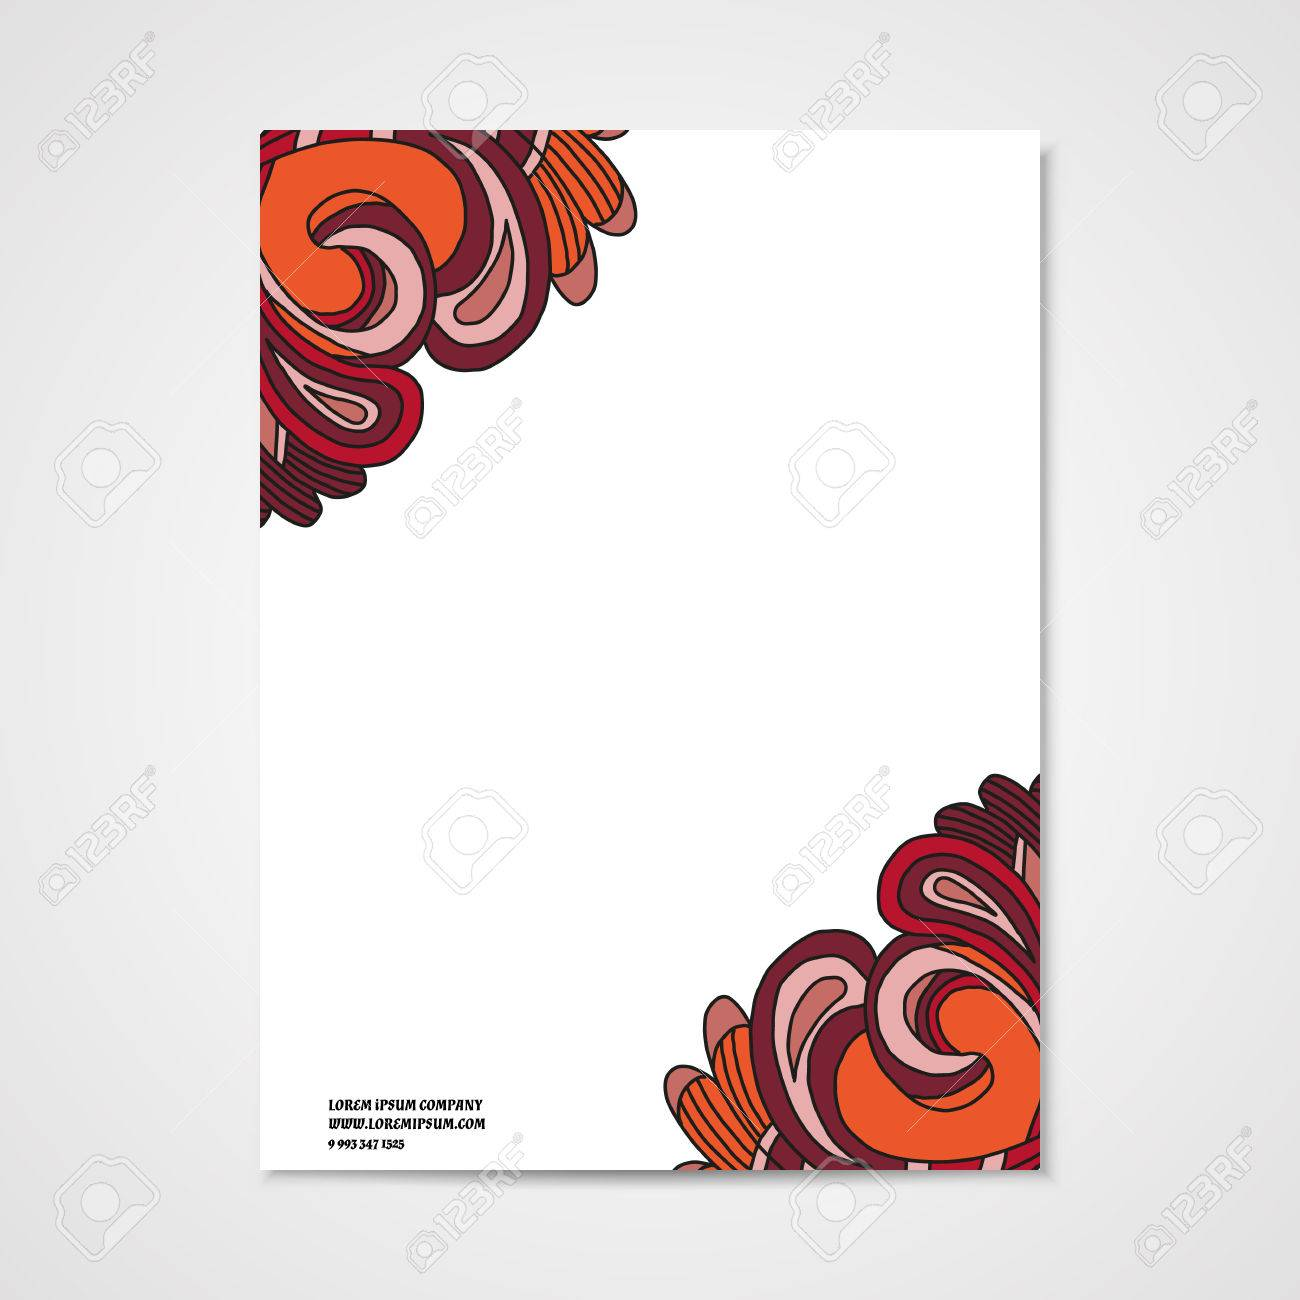 graphic design letterhead with hand drawn ornament in bright